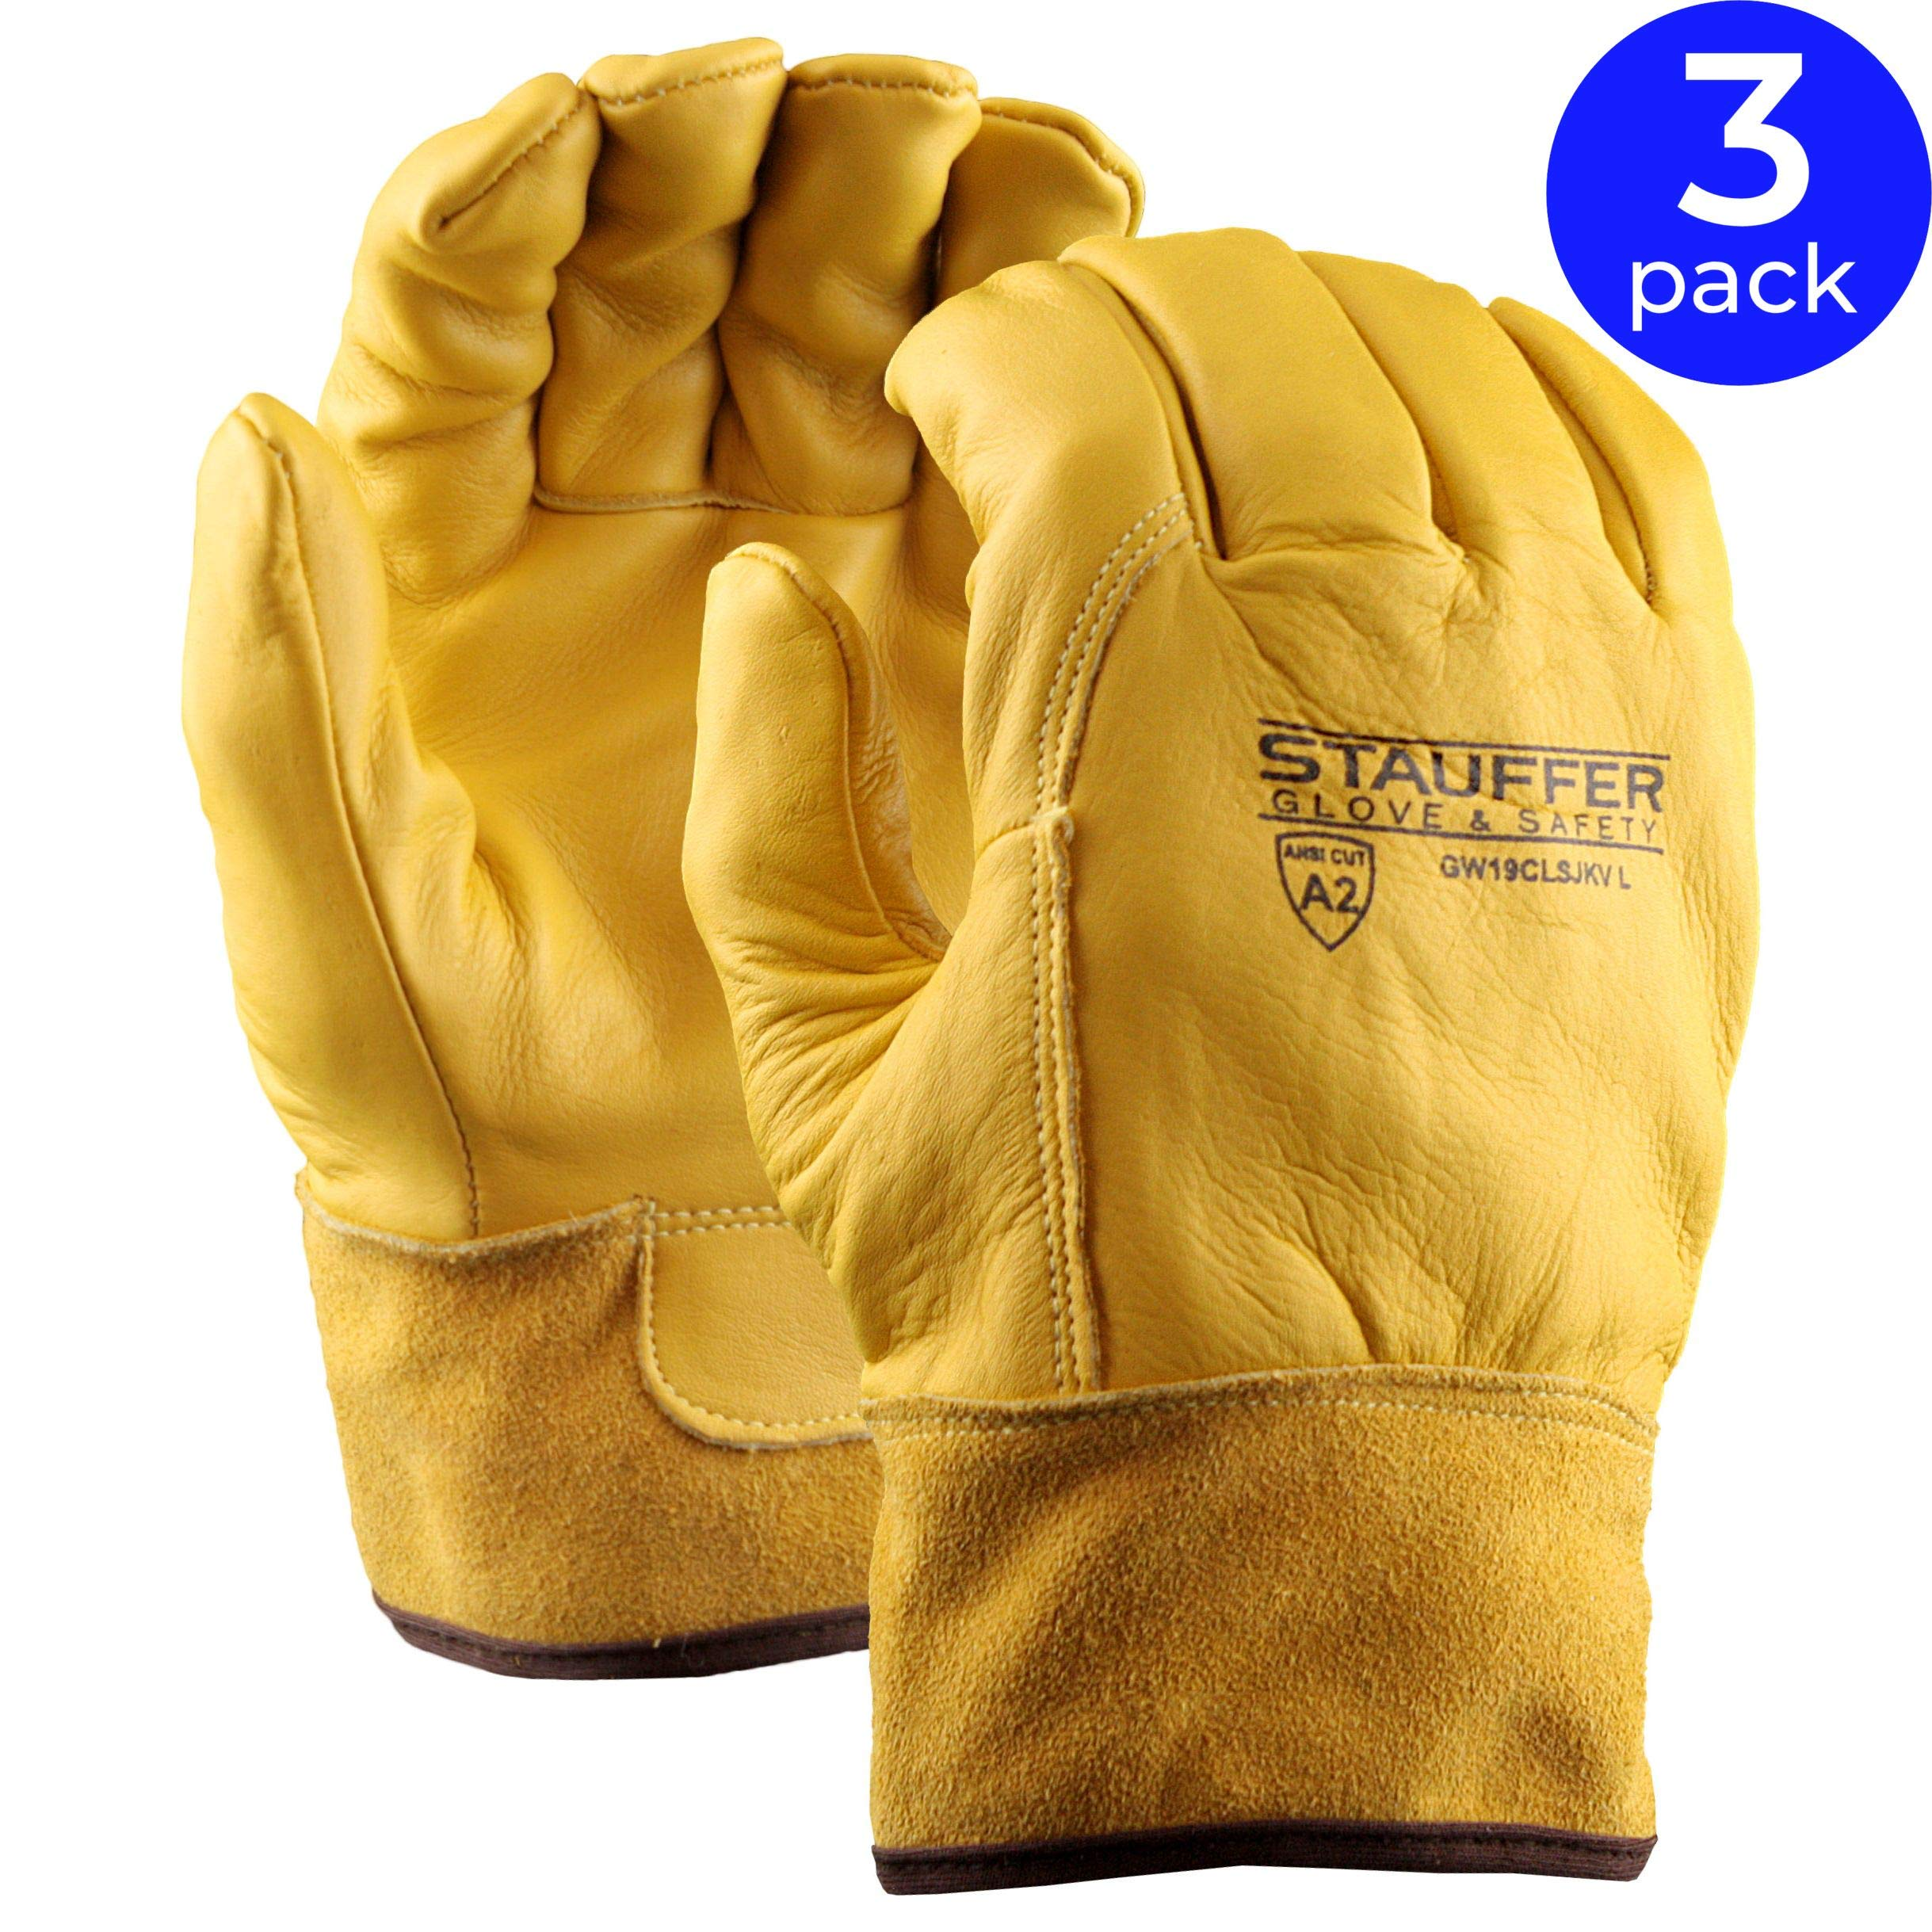 Stauffer Premium Leather Welding Glove with Kevlar Liner | ANSI Cut Level A2, 40 Cal/cm2 ATPV Rating, Gold Color - Extra Large (Pack of 3)